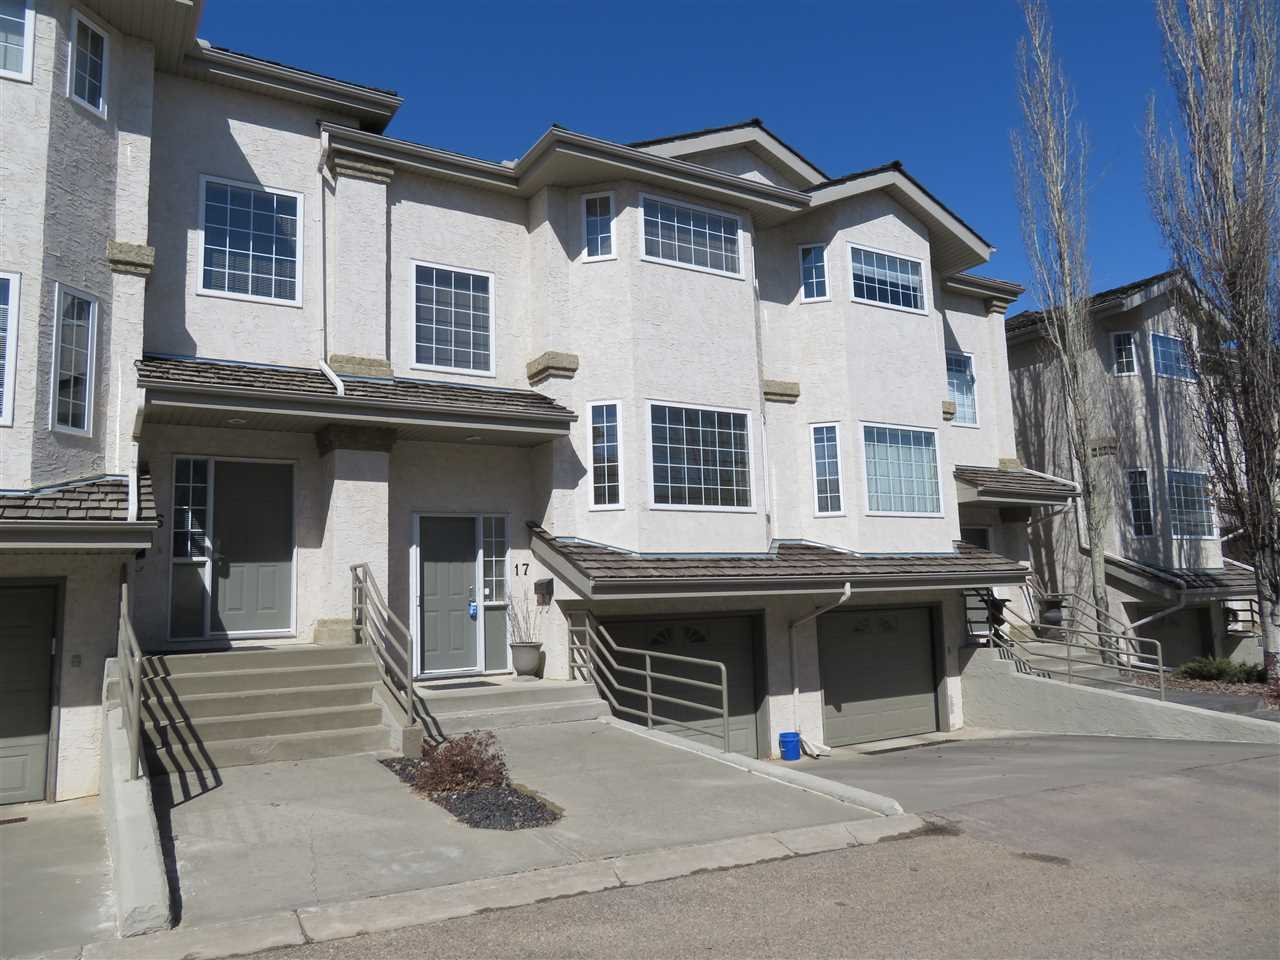 Absolutely gorgeous and upgraded townhouse in the heart of Carter Crest! This unit features over 1400sqft + a developed bsmt and tandem double attached garage! The main lvl greets you with a lrg living room w/gas fireplace, dining room, ½ bath and a spacious kitchen with lrg island c/w quartz counters and updated appliances. Light H/W flooring is found throughout the main floor, stairs and upper level. Need to unwind? Look no further than your private west facing deck where you can relax and enjoy the sunsets every day! The second floor features a laundry space and 2 large master suites each with walk in closets and their own 4pce ensuite! The basement is developed with an additional den/bdrm featuring brand new carpet! Many upgrades and updates on this lovely home including the newer water tank, central AC, updated roof, central vac, newer sump pump and updated toilets. Ideally located close to all major amenities and quick access to the main traffic corridors! Home shows very well + ready to move in!